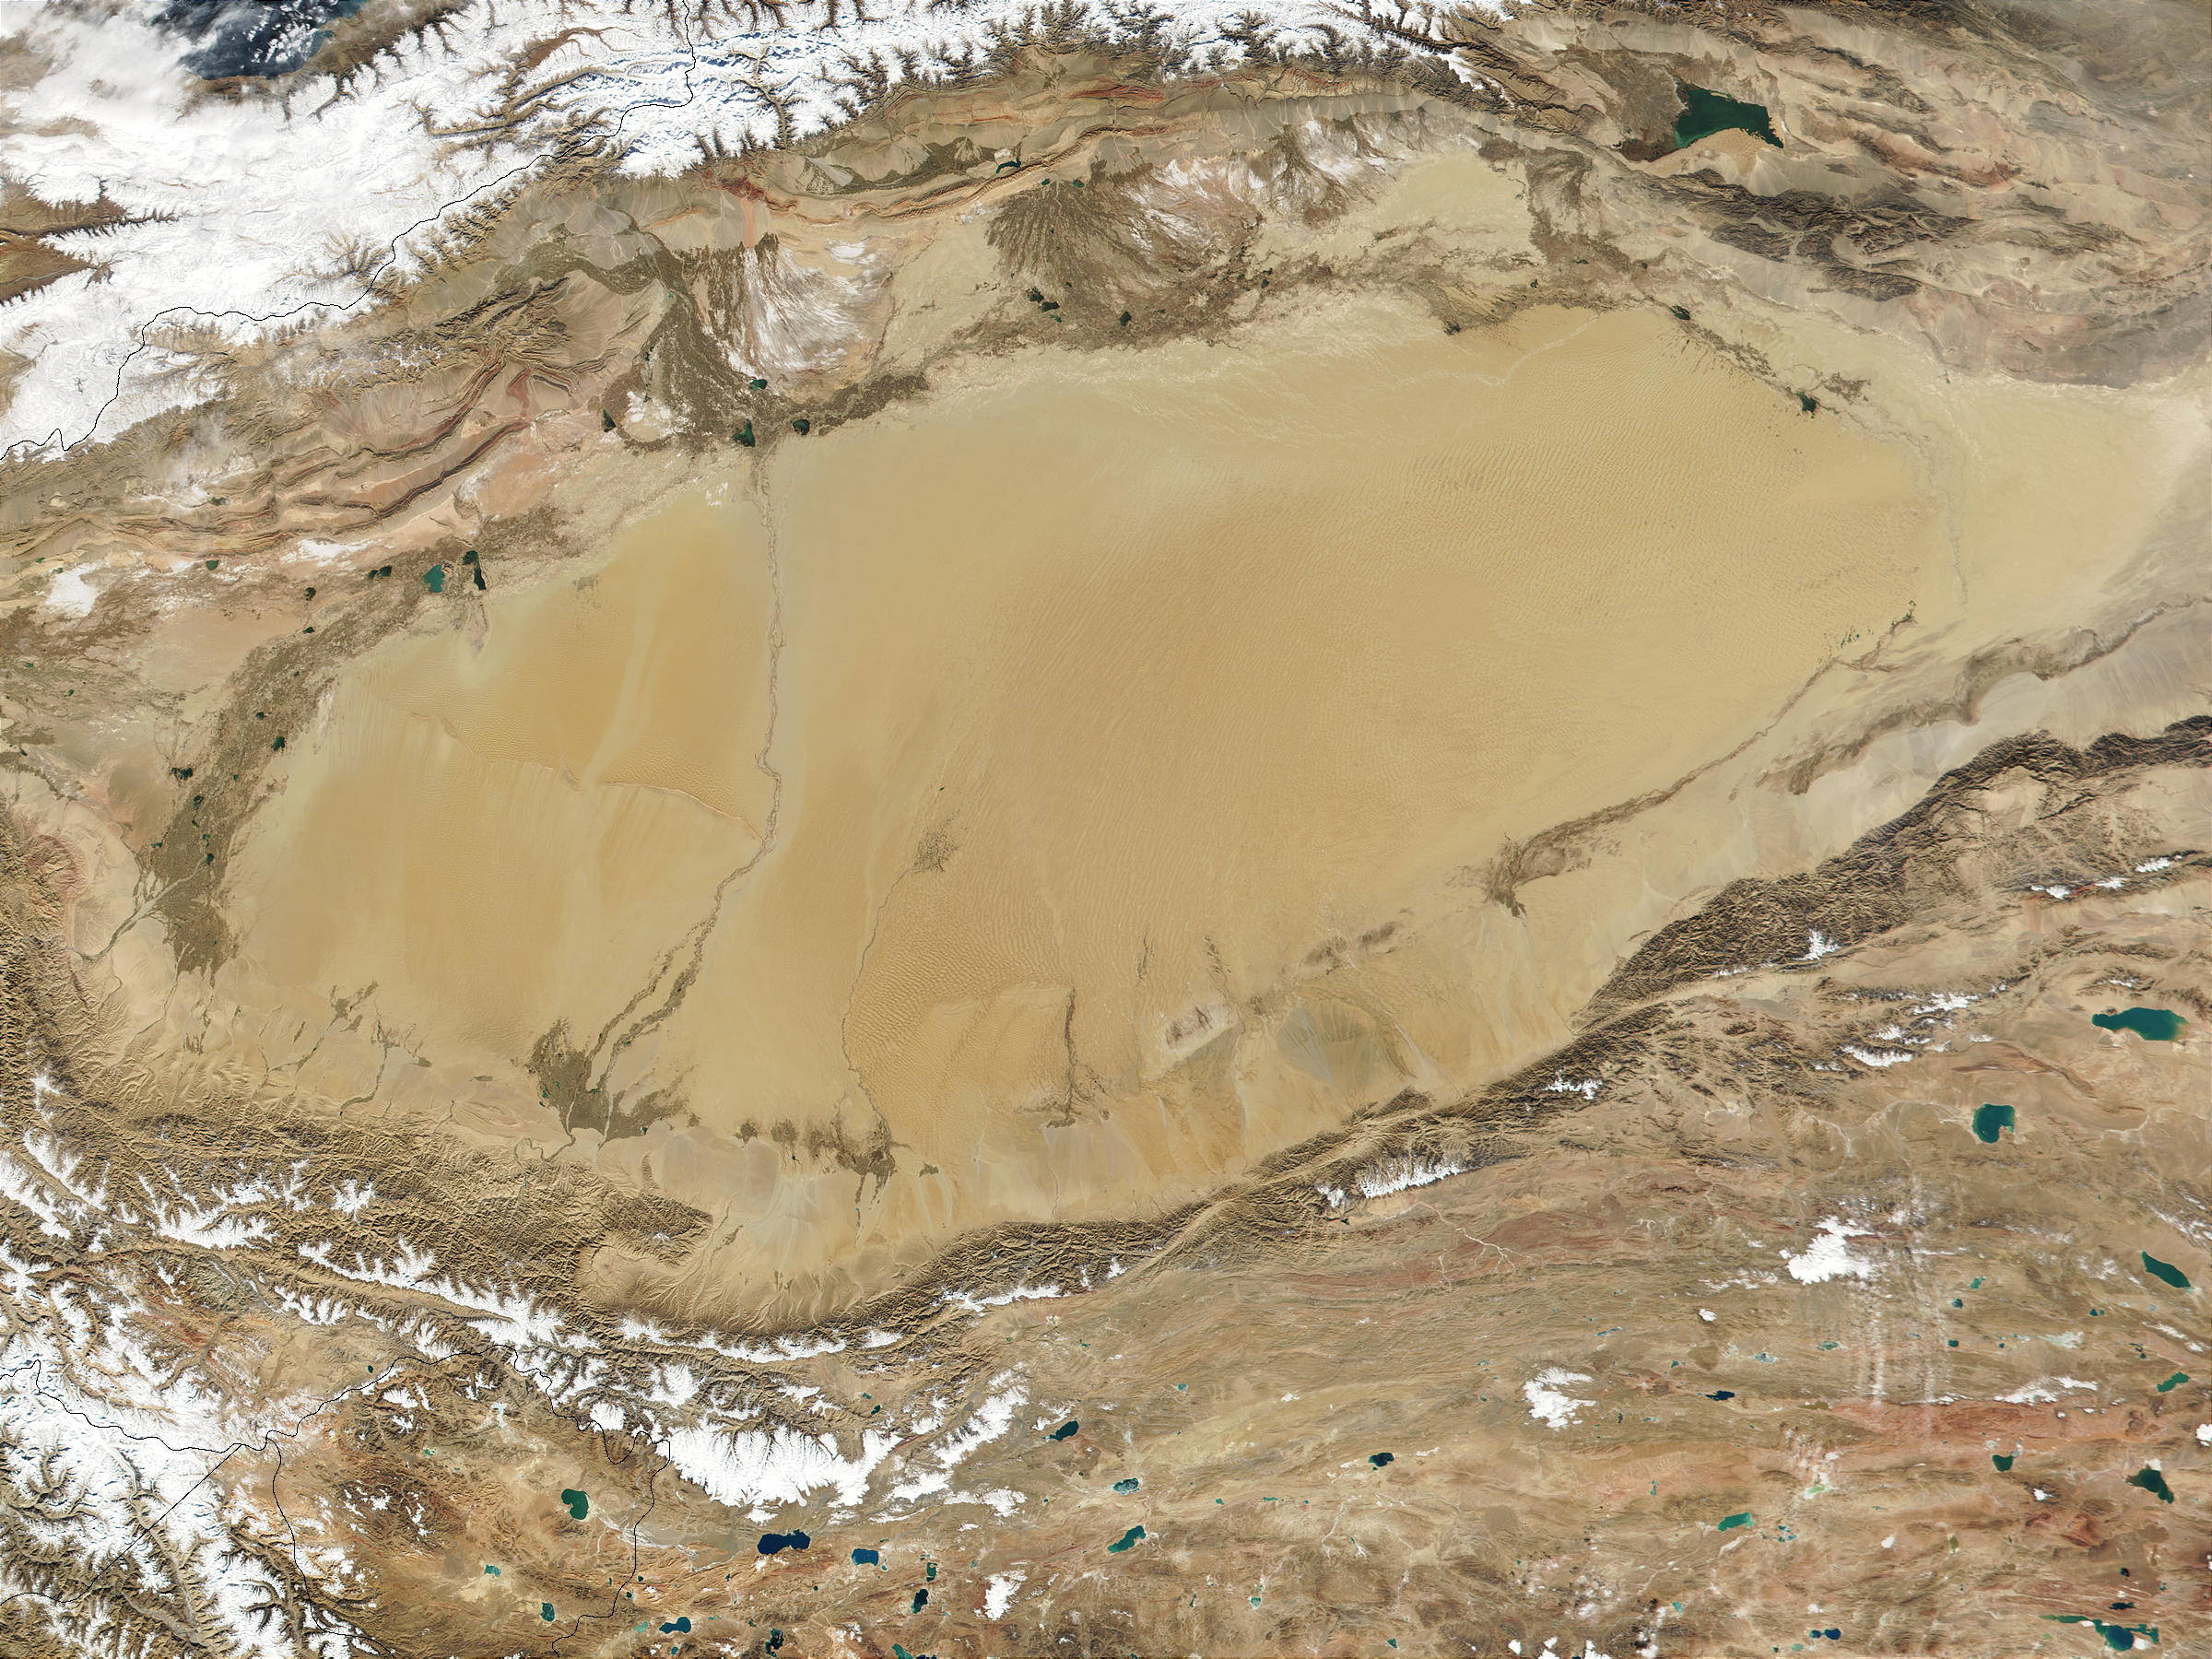 Taklimakan desert, western China - related image preview